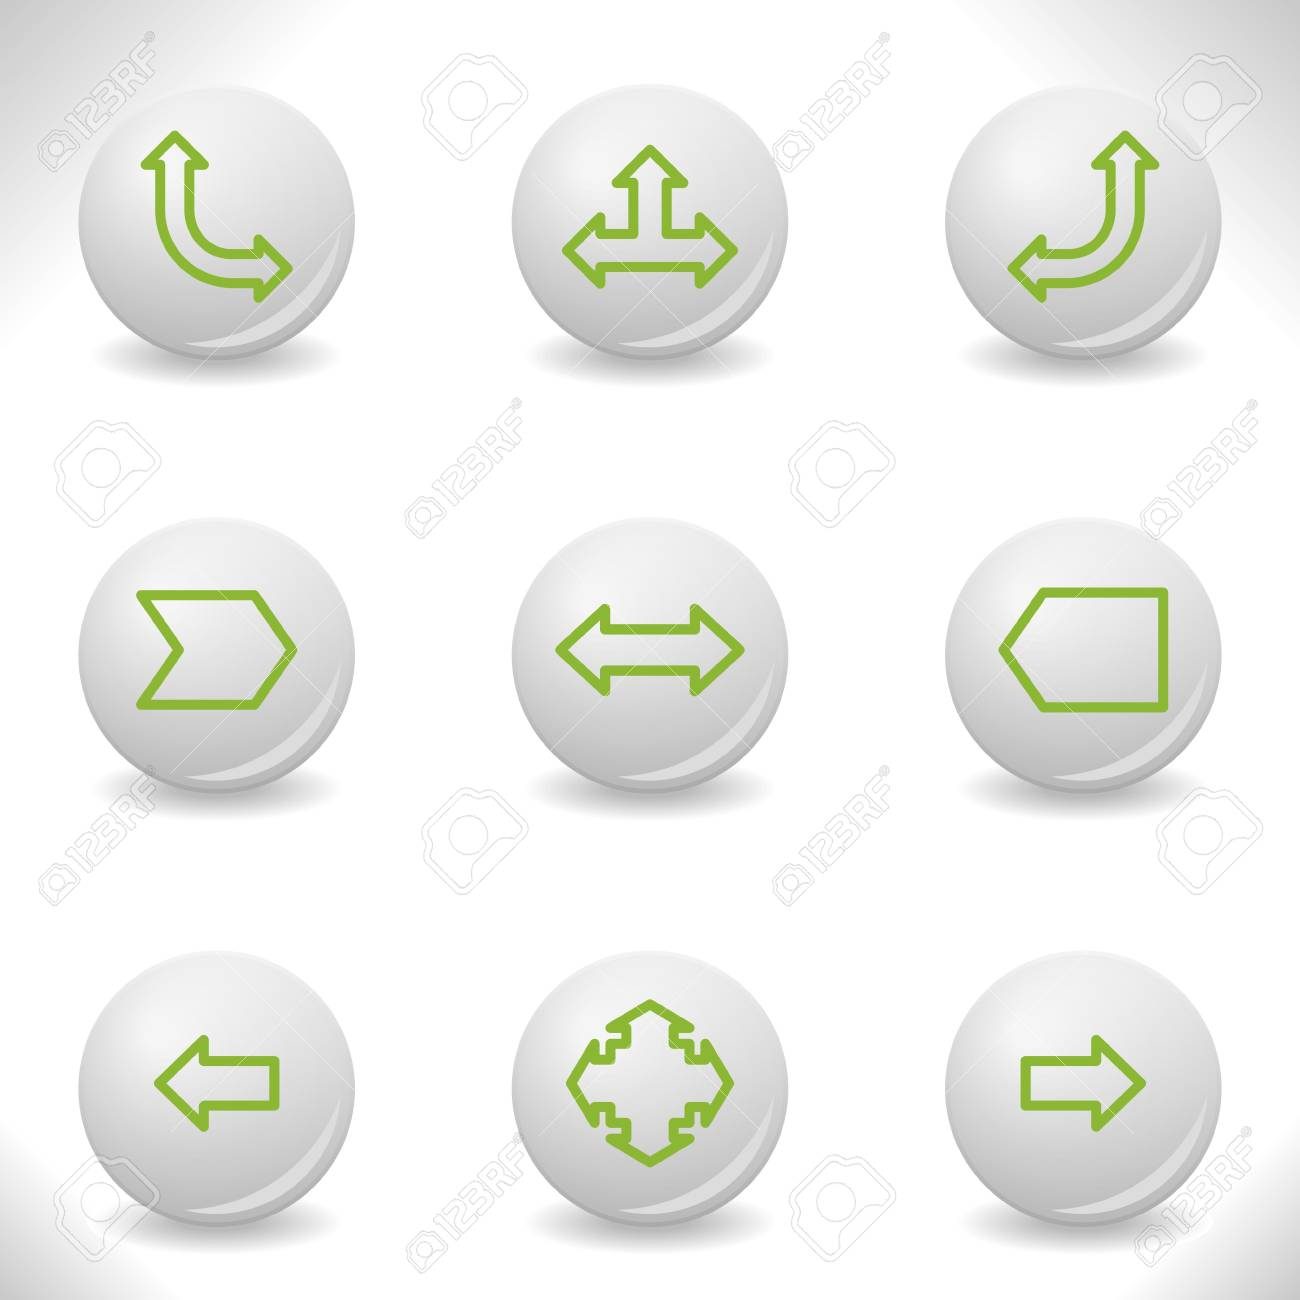 Grey balls with green icon and shadow (set 12). Stock Vector - 16875993